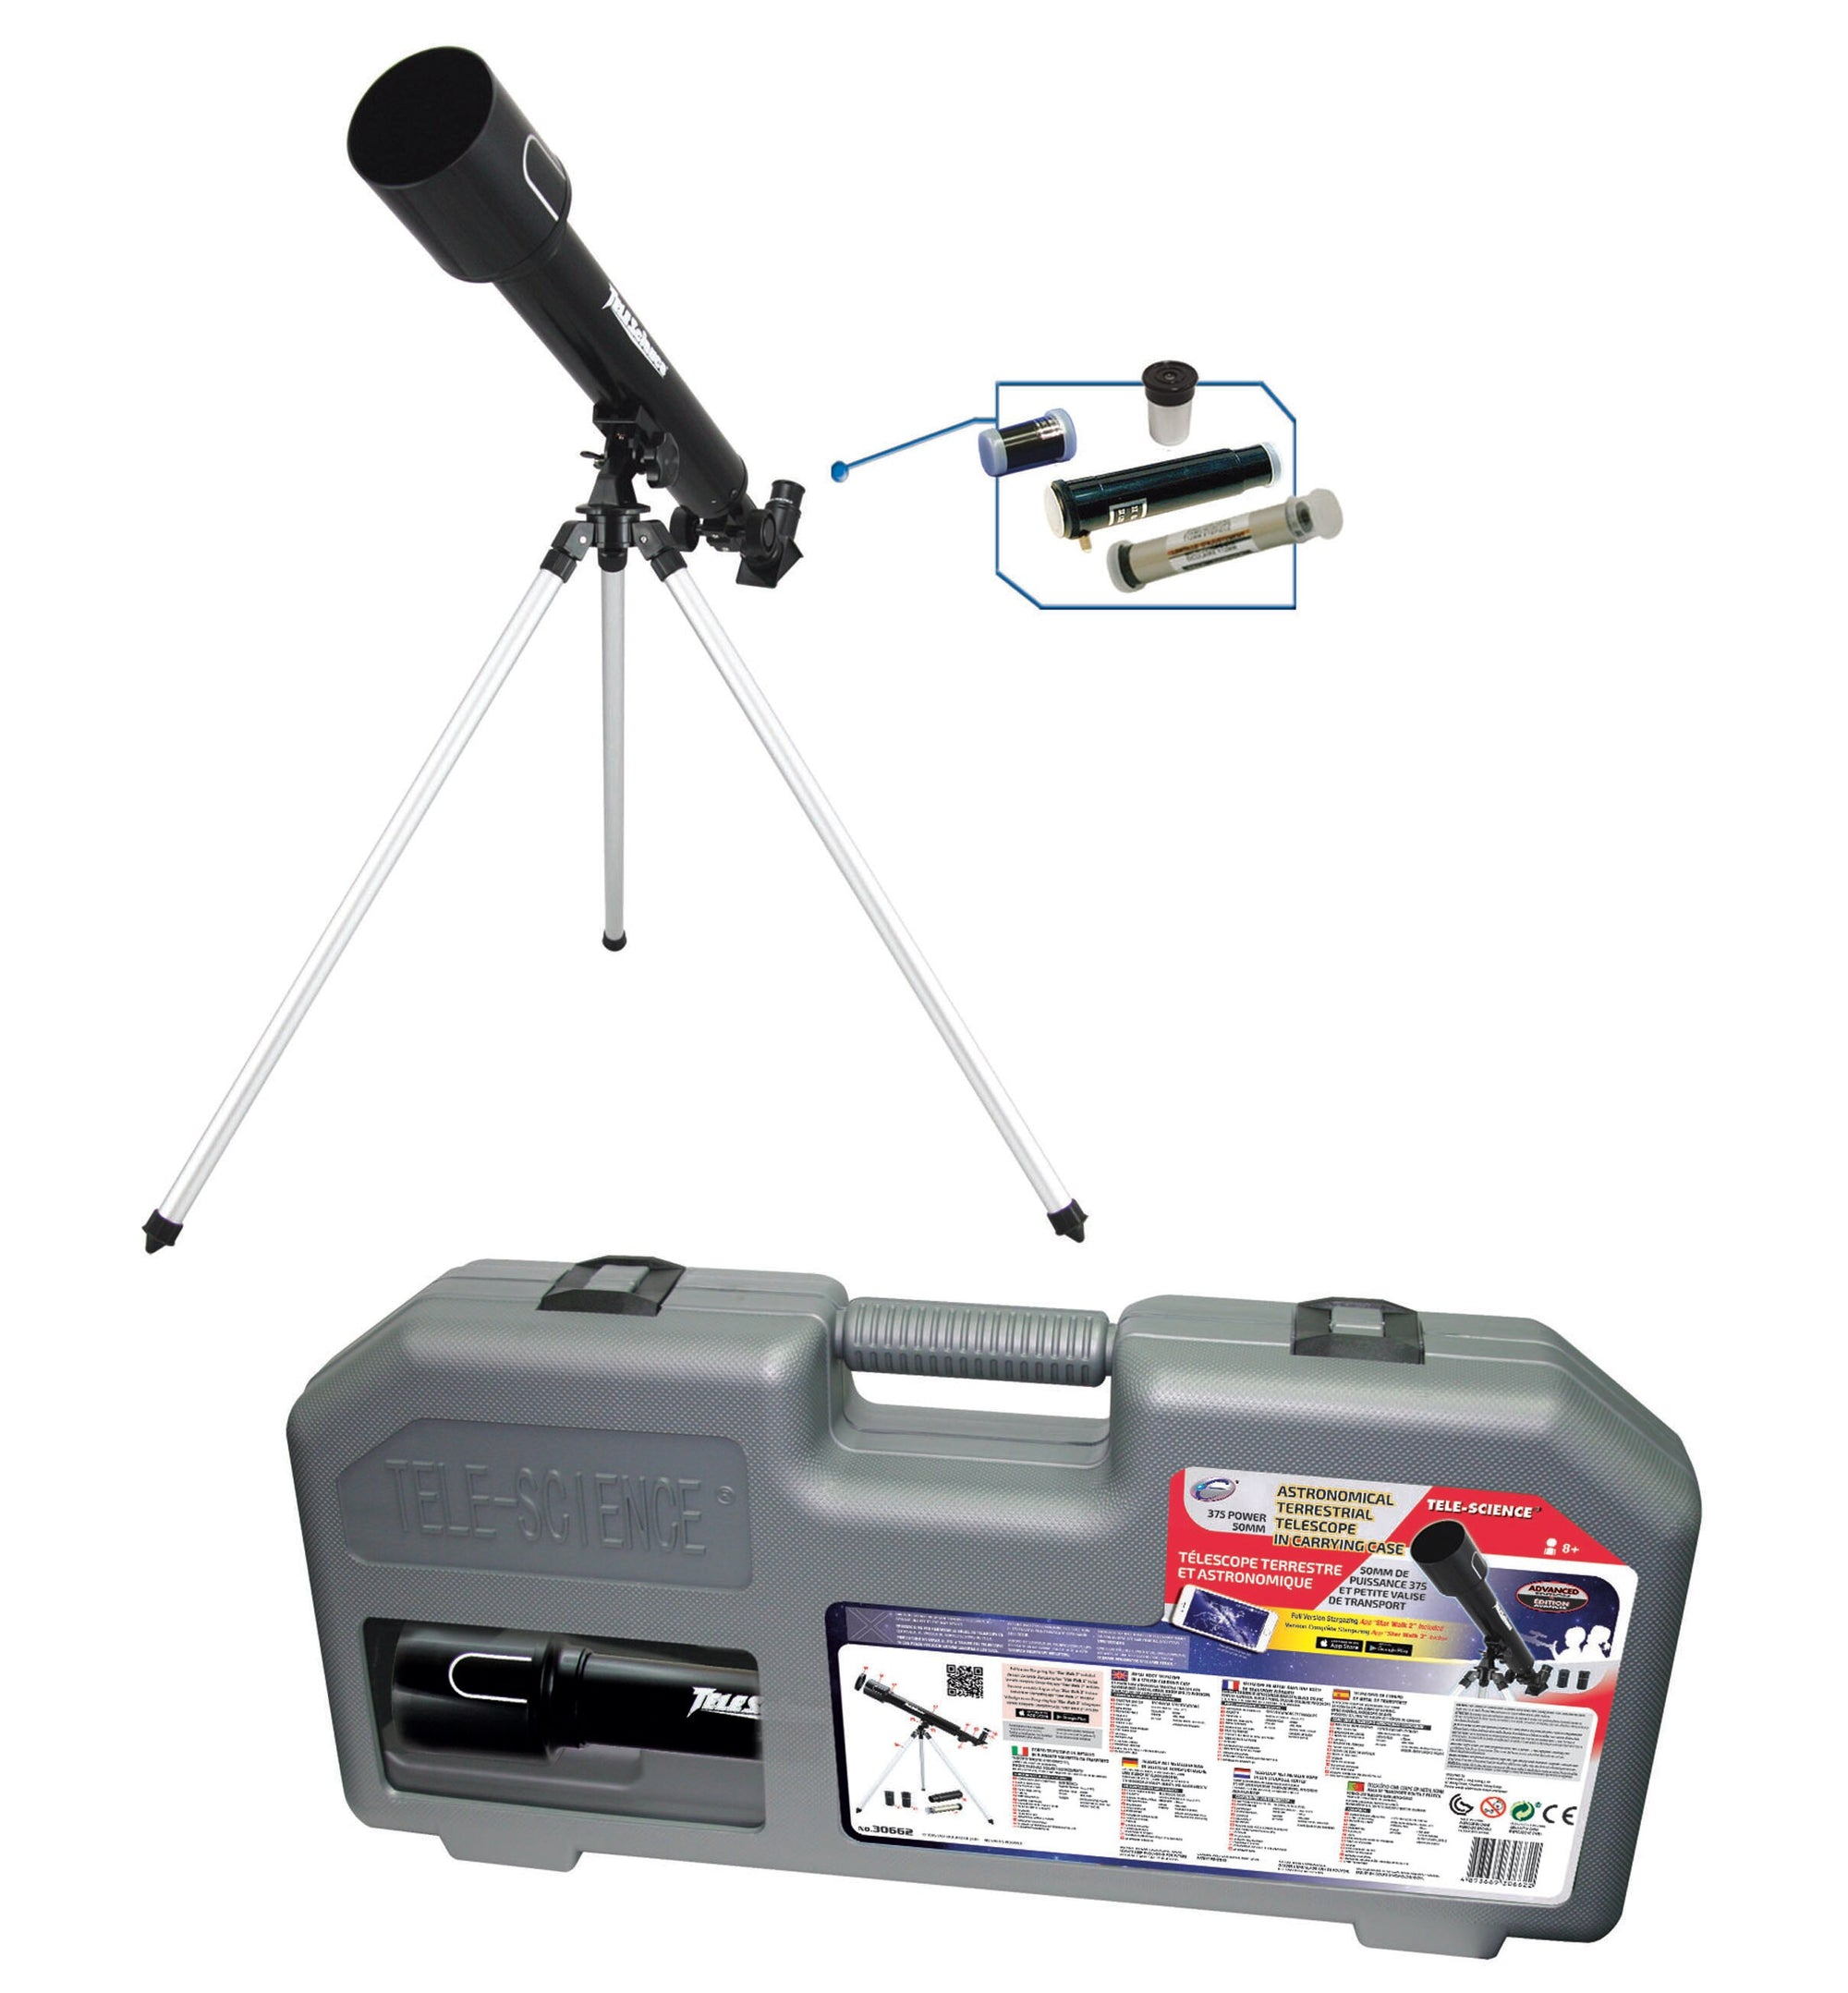 Tele Science 375 Power 50mm Astronomical Telescope